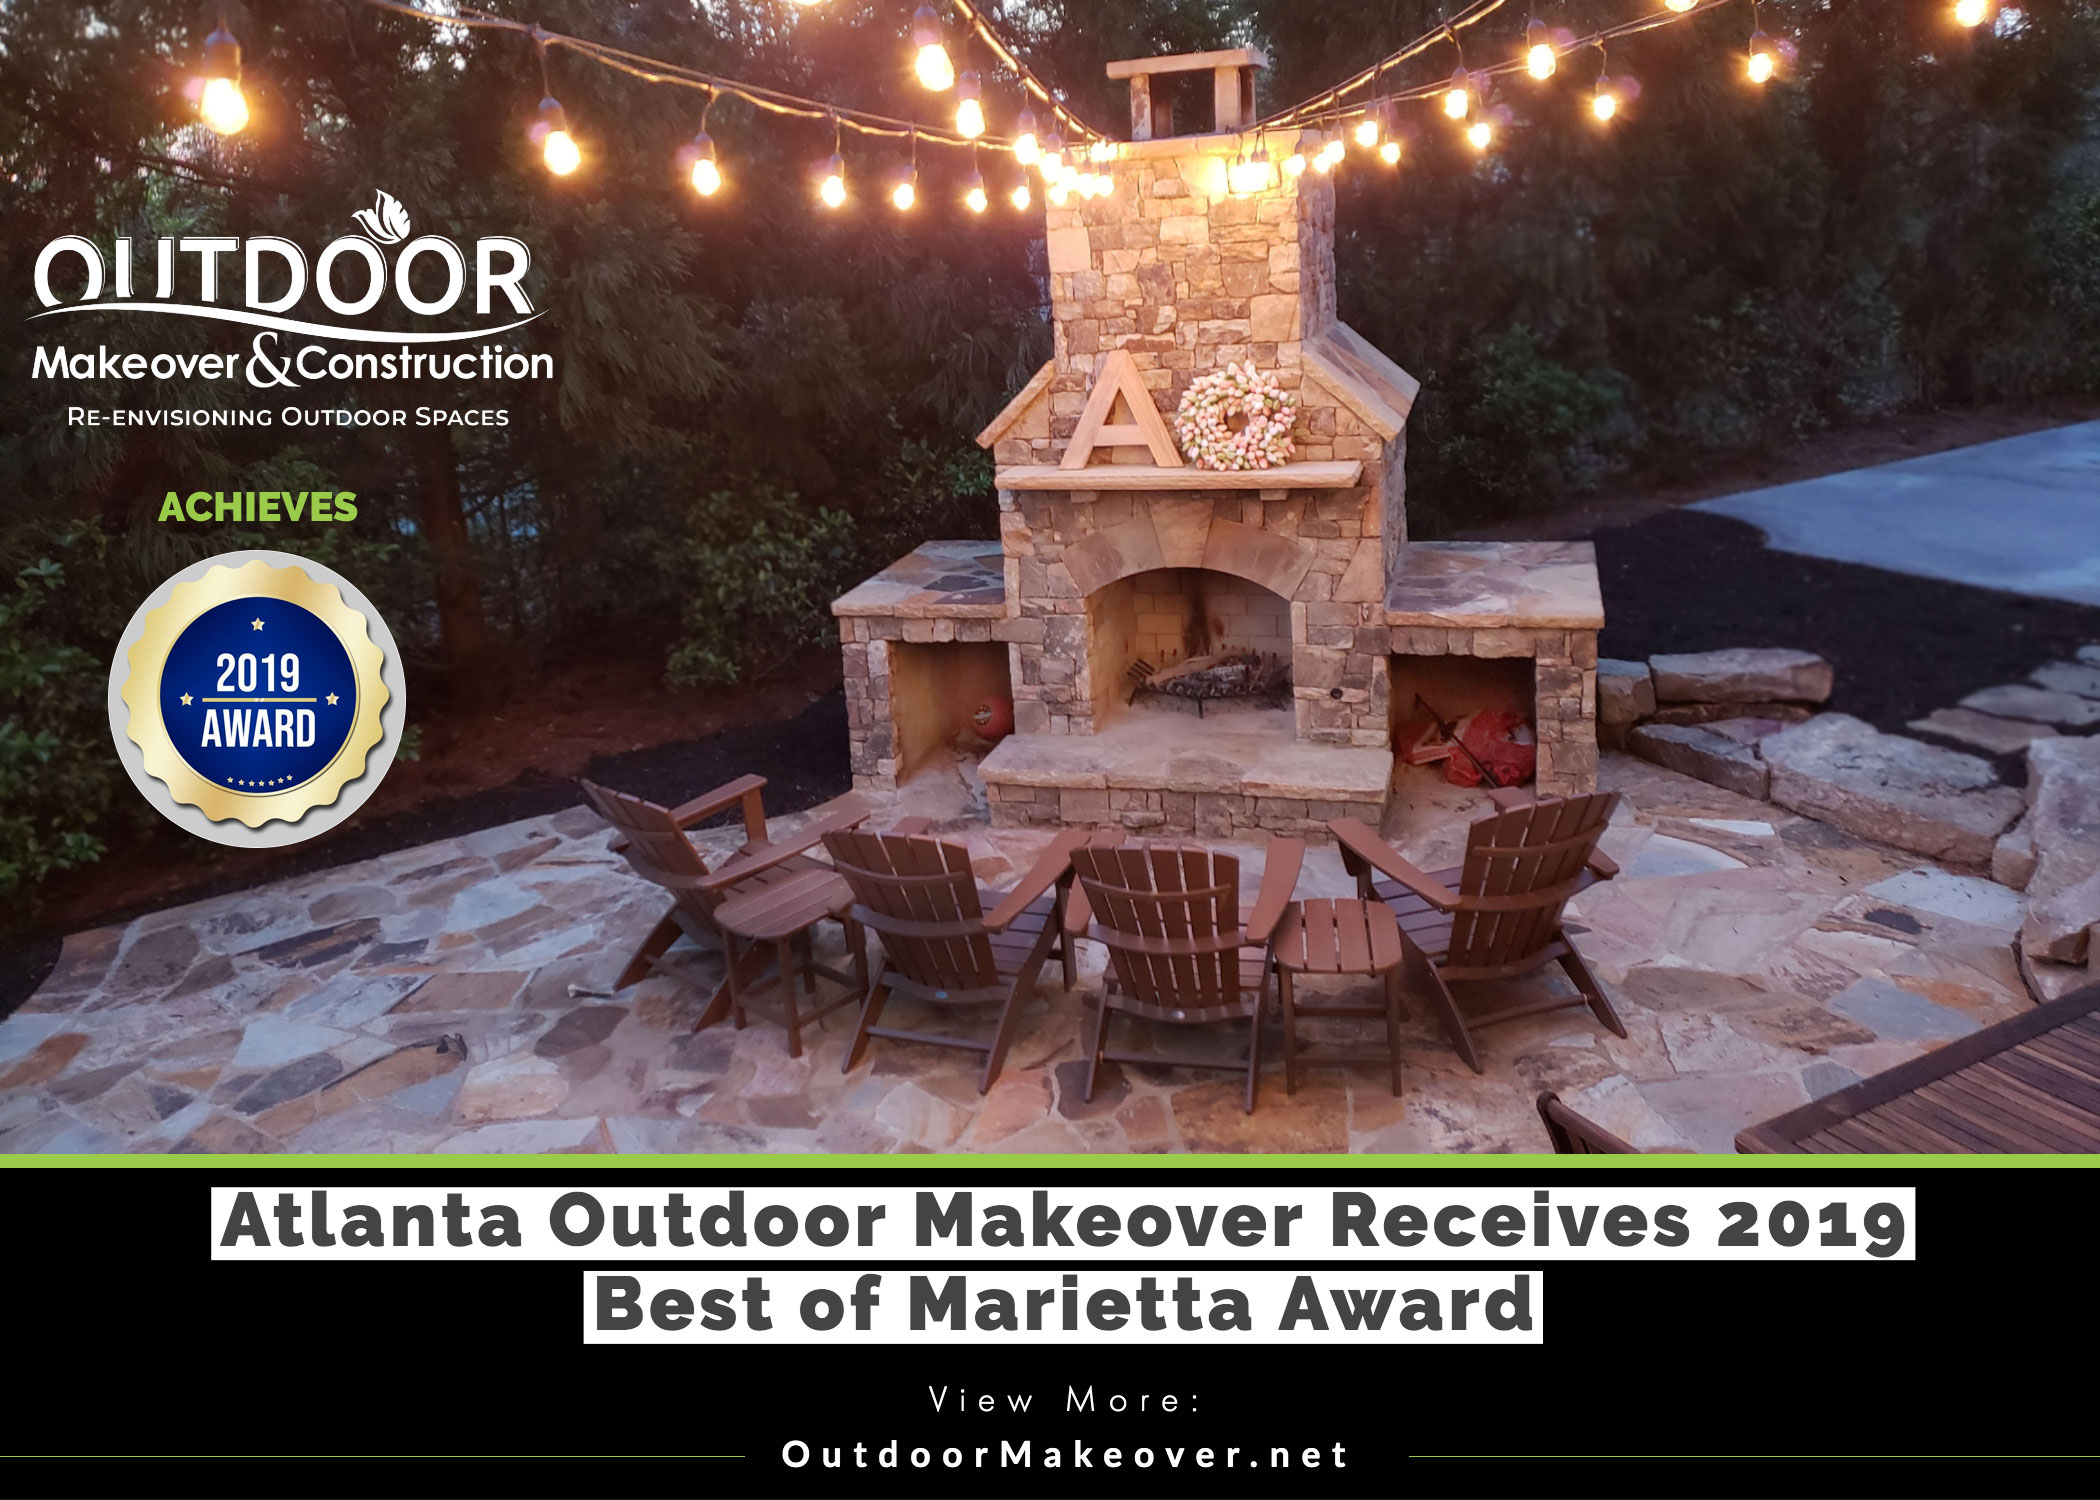 2019 Best of Marietta Award for Outdoor Makeover & Construction